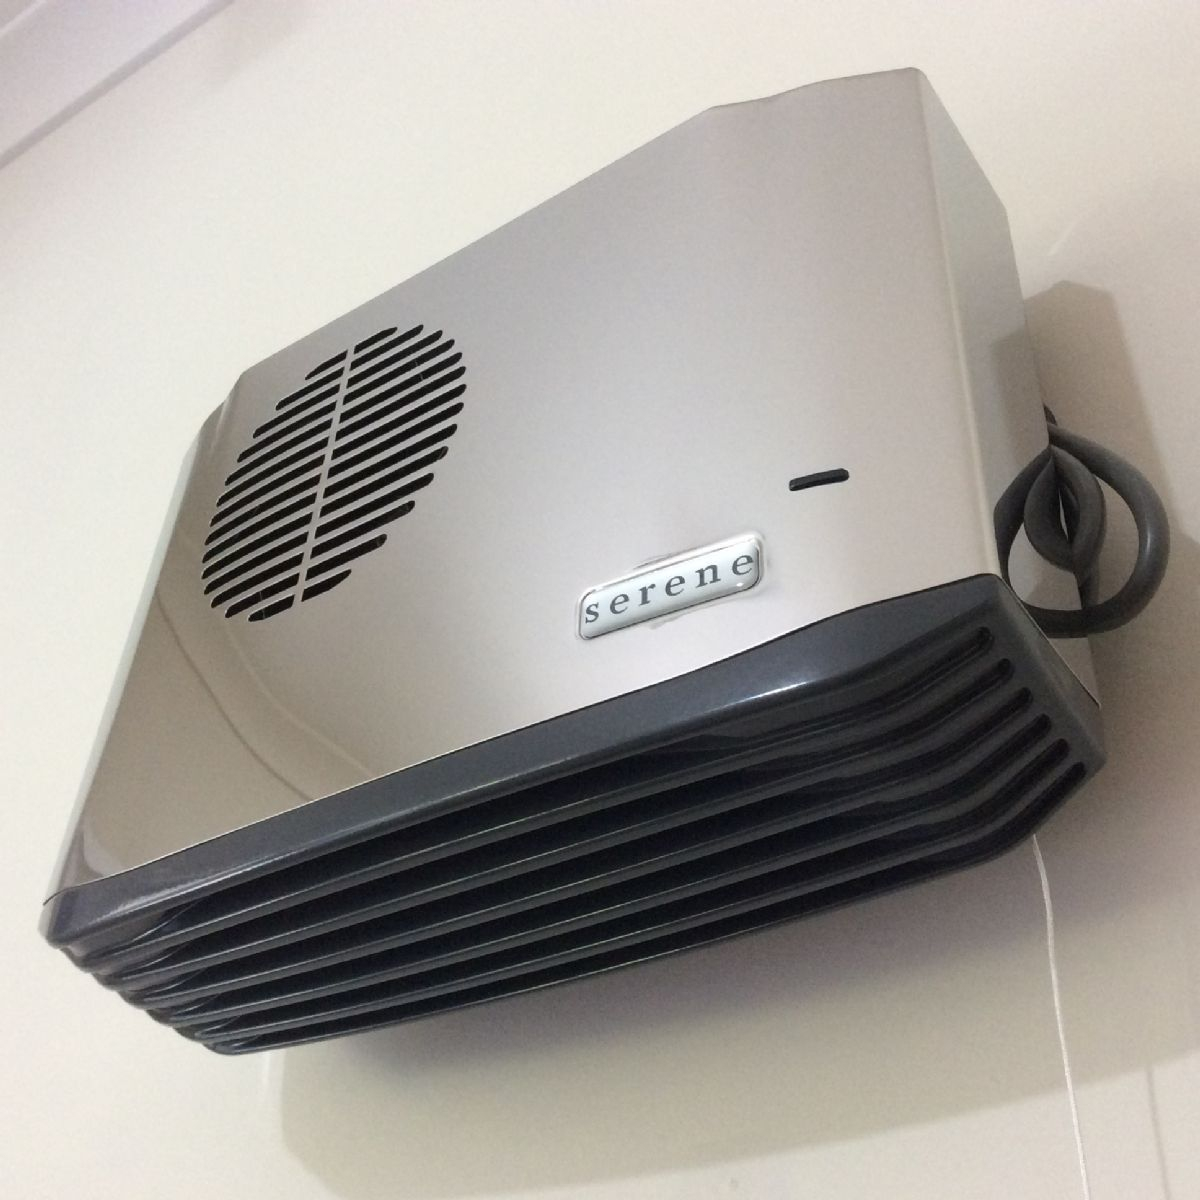 Bathroom Fan Heater: Serene 'Compact' 2.4kW Polished Chrome